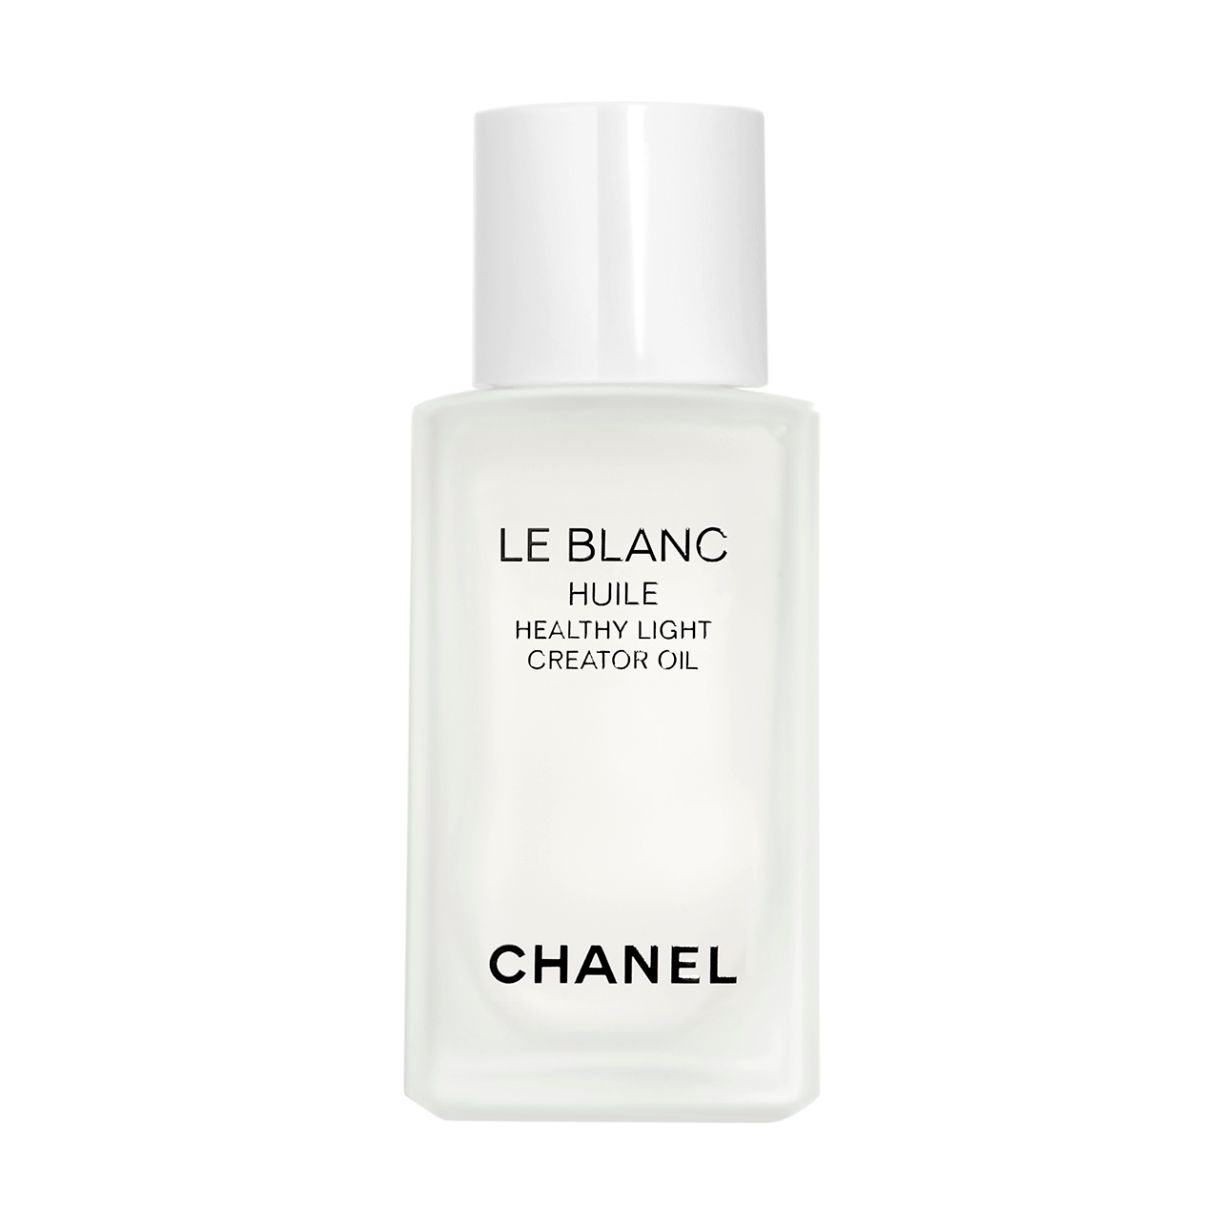 LE BLANC HUILE HEALTHY LIGHT CREATOR OIL REVITALIZING - BRIGHTENING - RESTORING